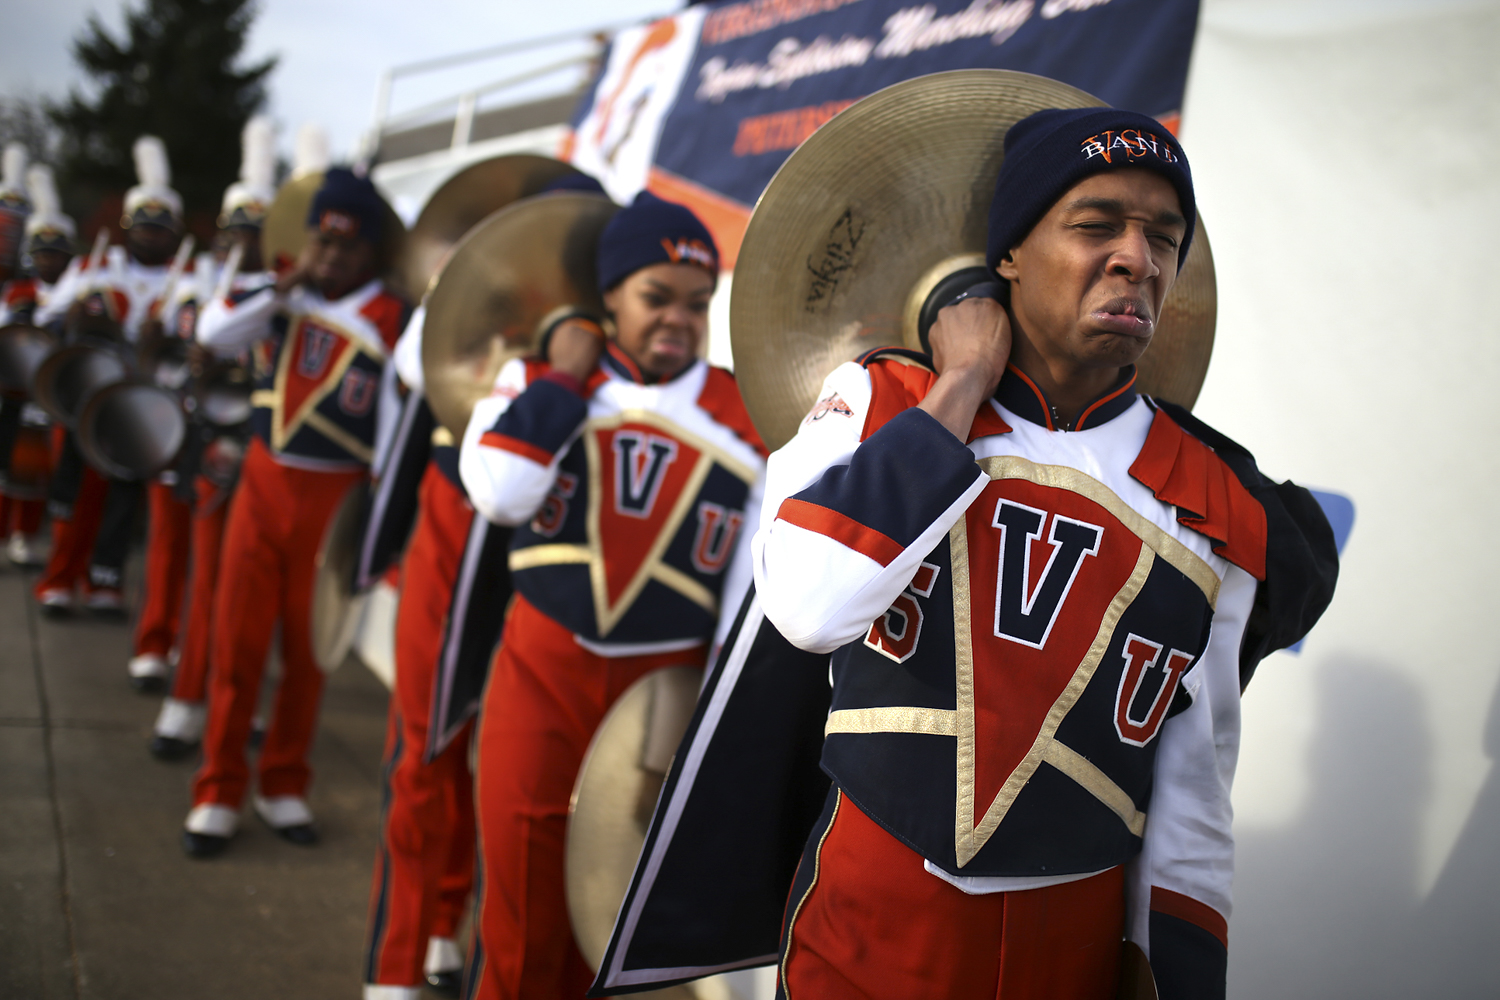 Virginia State University Trojan Explosion marching band members make intimidating faces as they march into Salem Stadium ahead of the CIAA conference championship football game against Fayetteville State University in Salem, Va., on Saturday, Nov. 11, 2017. [Scott P. Yates/progress-index.com]